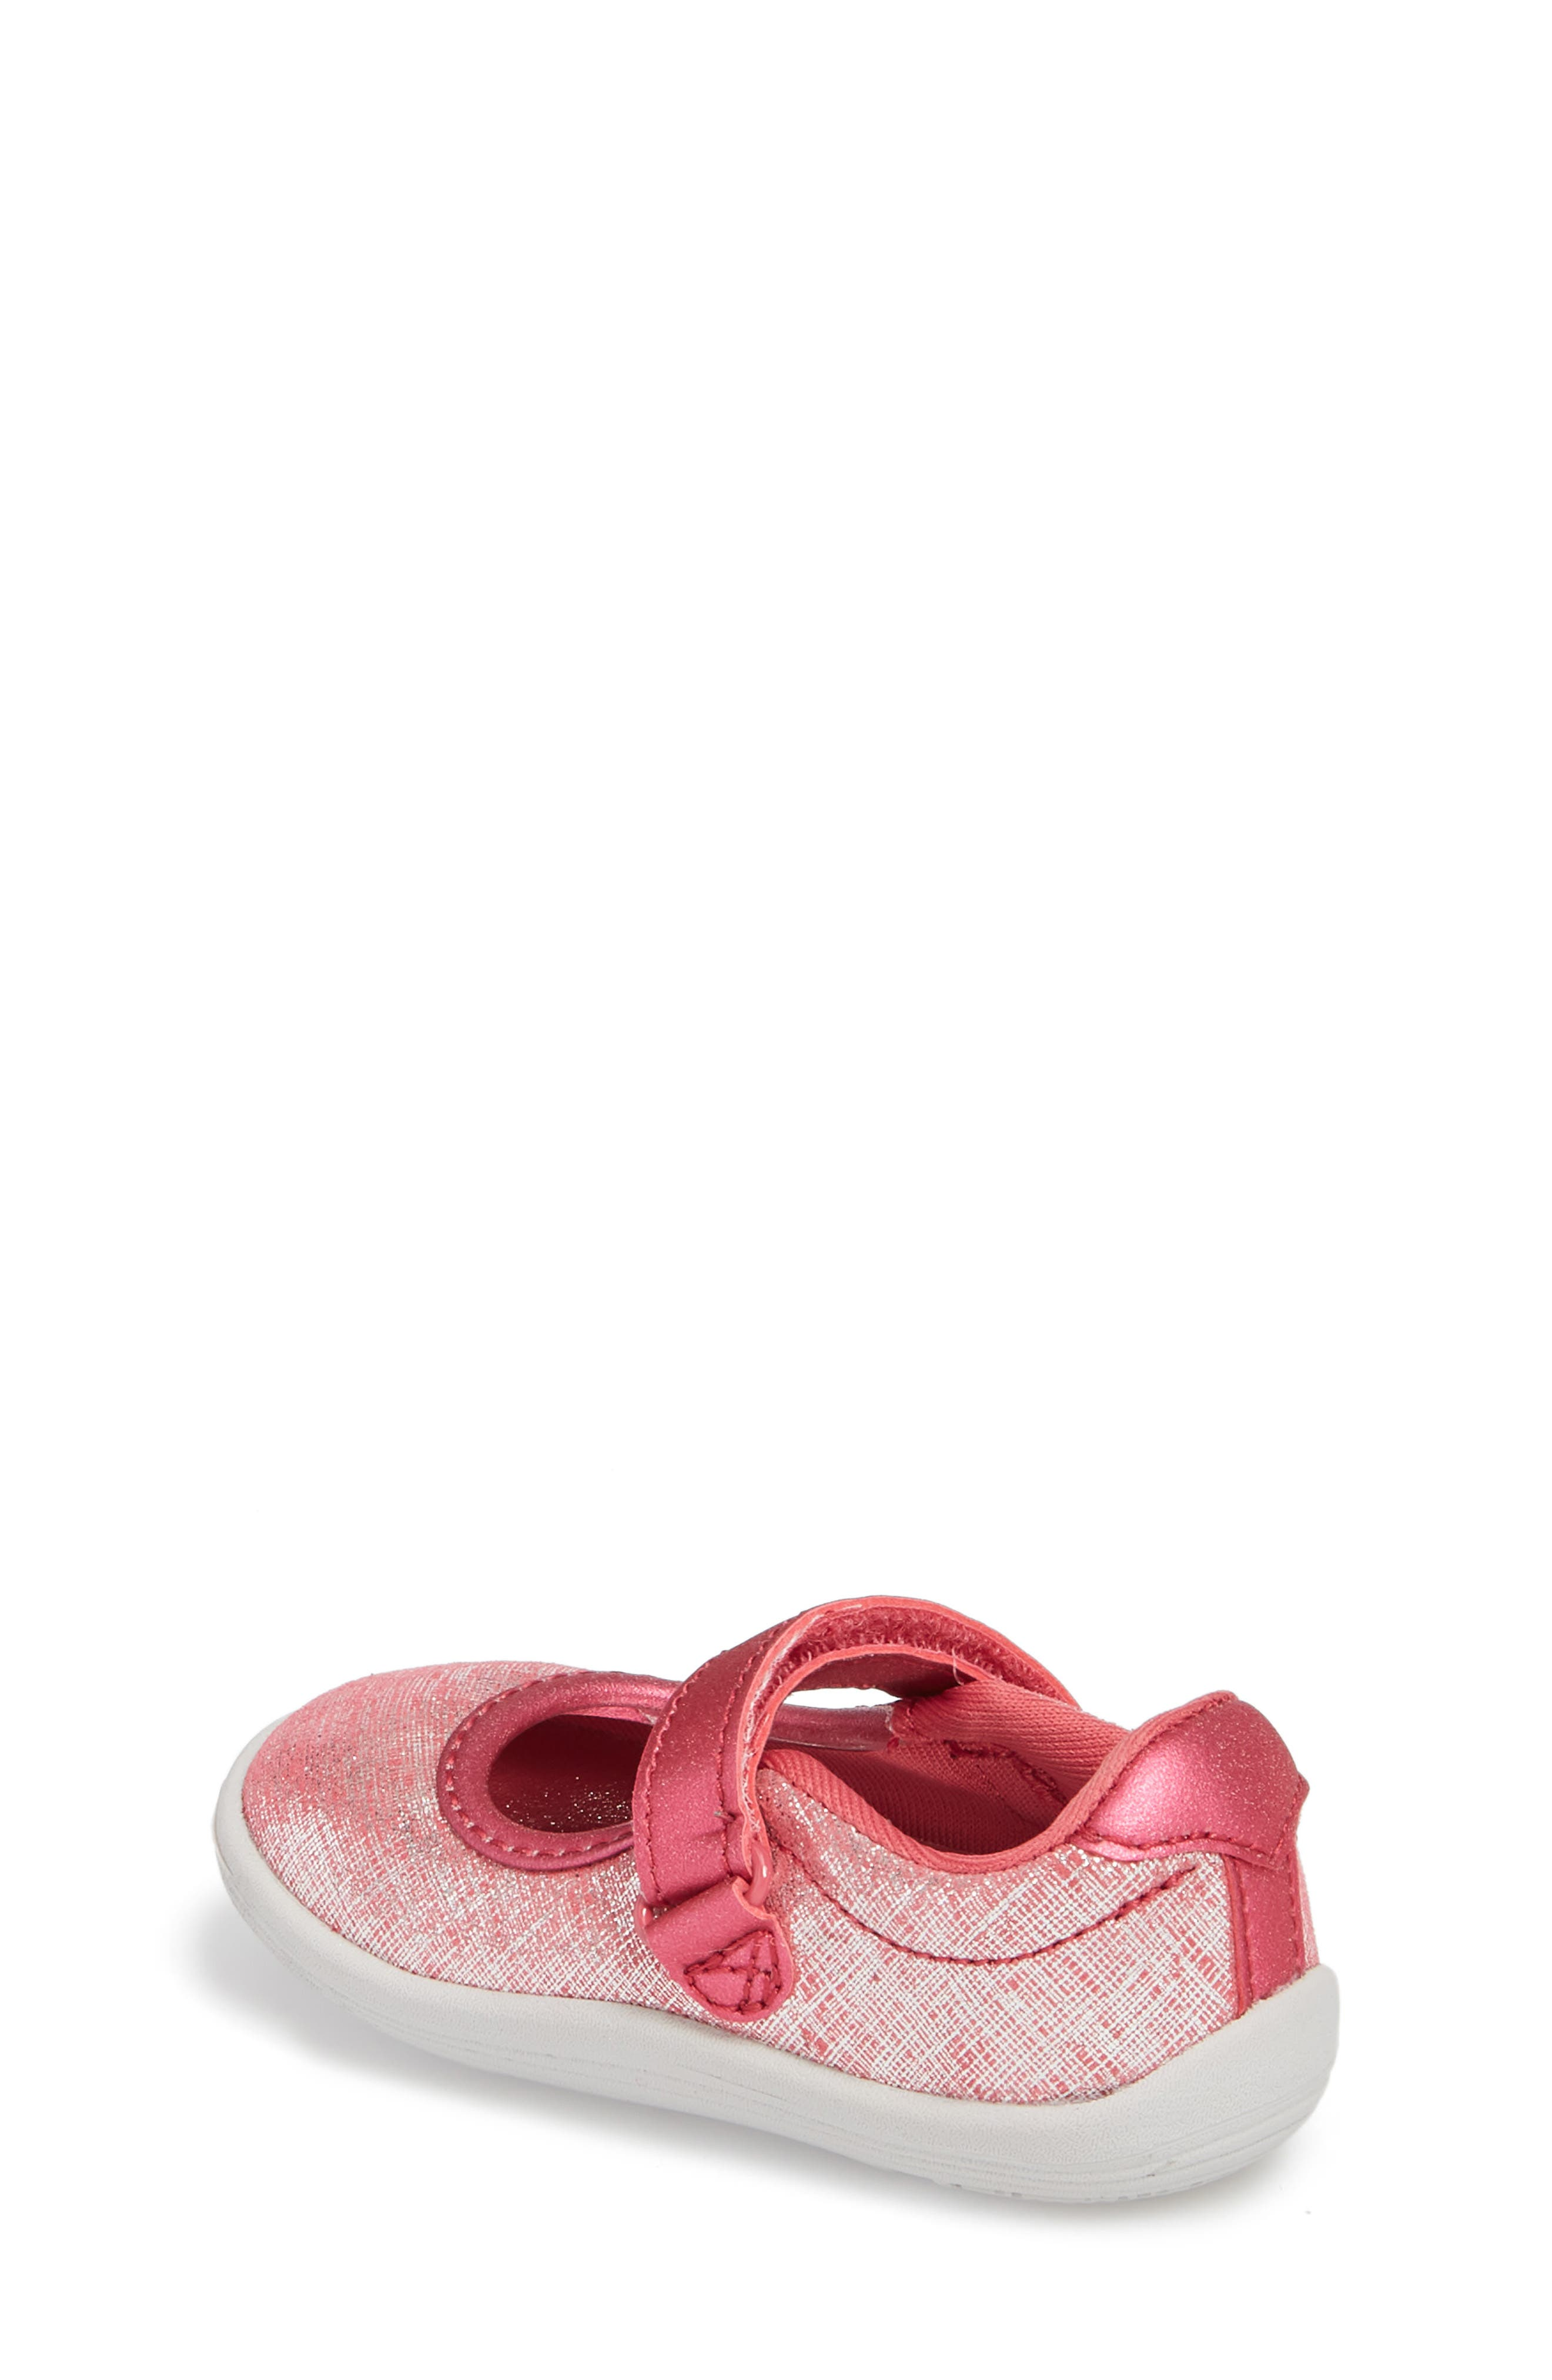 Nora Metallic Mary Jane Sneaker,                             Alternate thumbnail 2, color,                             Pink Shimmer Leather